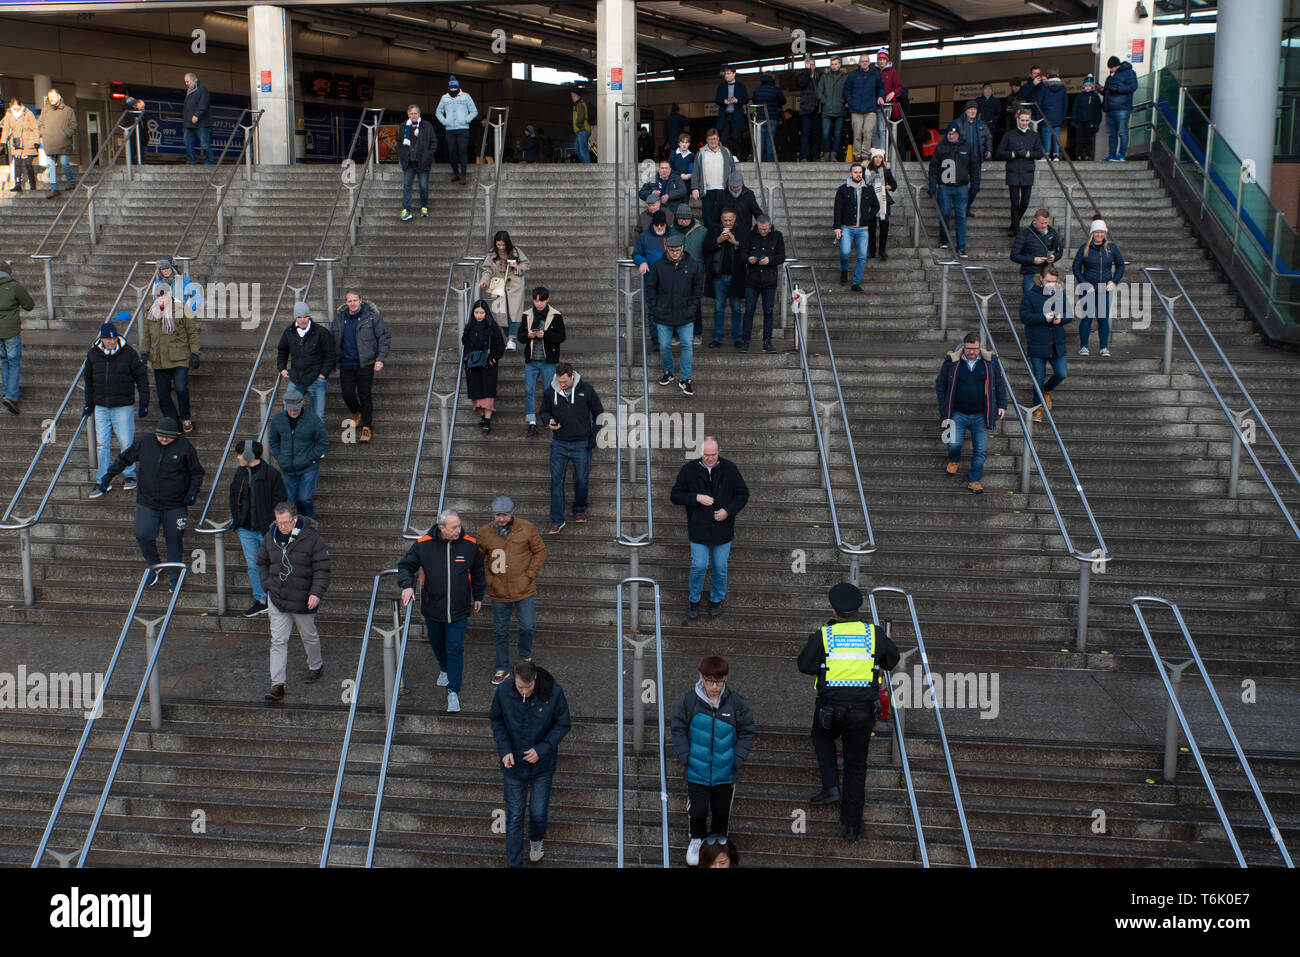 Supporters arriving at Wembley park station for a Premier League game between Tottenham Hotspur and Newcastle F.C. February 2019. - Stock Image